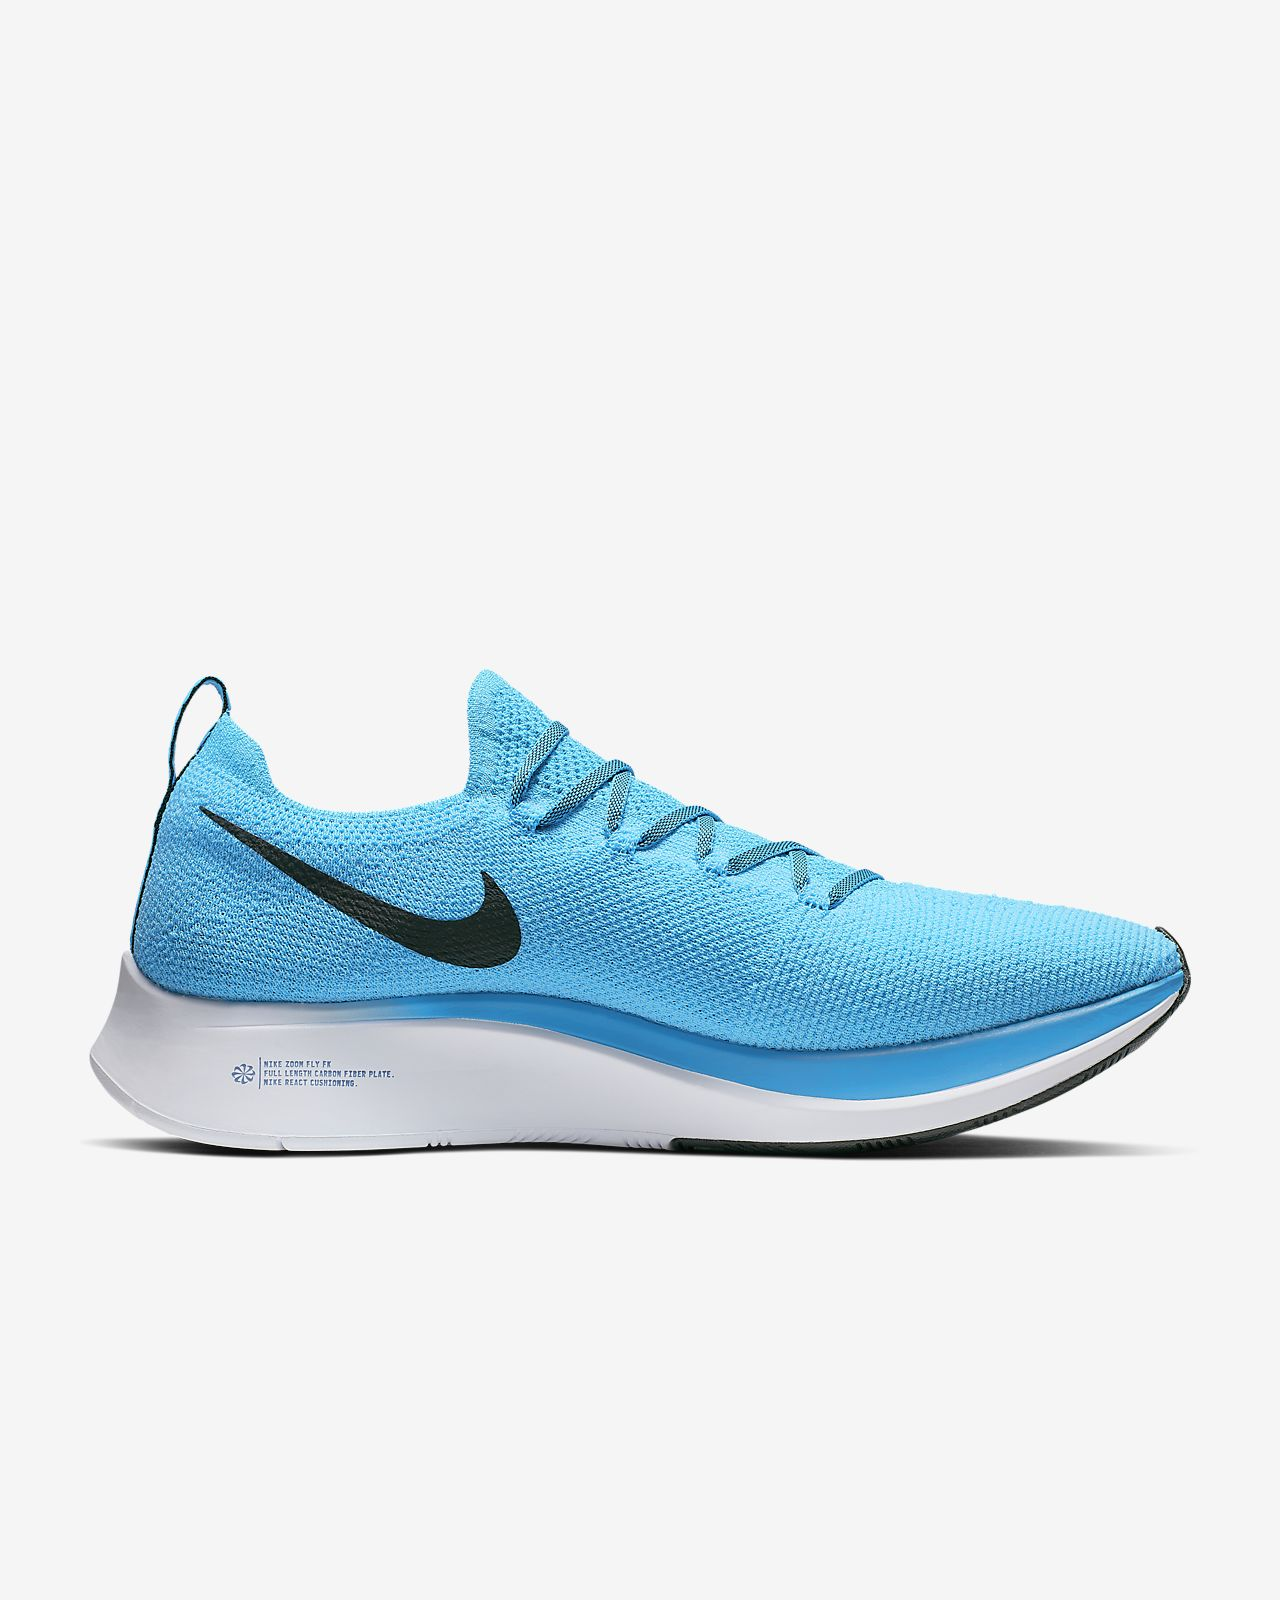 huge selection of 8e48b 405d7 Nike Zoom Fly Flyknit Men's Running Shoe. Nike.com SE